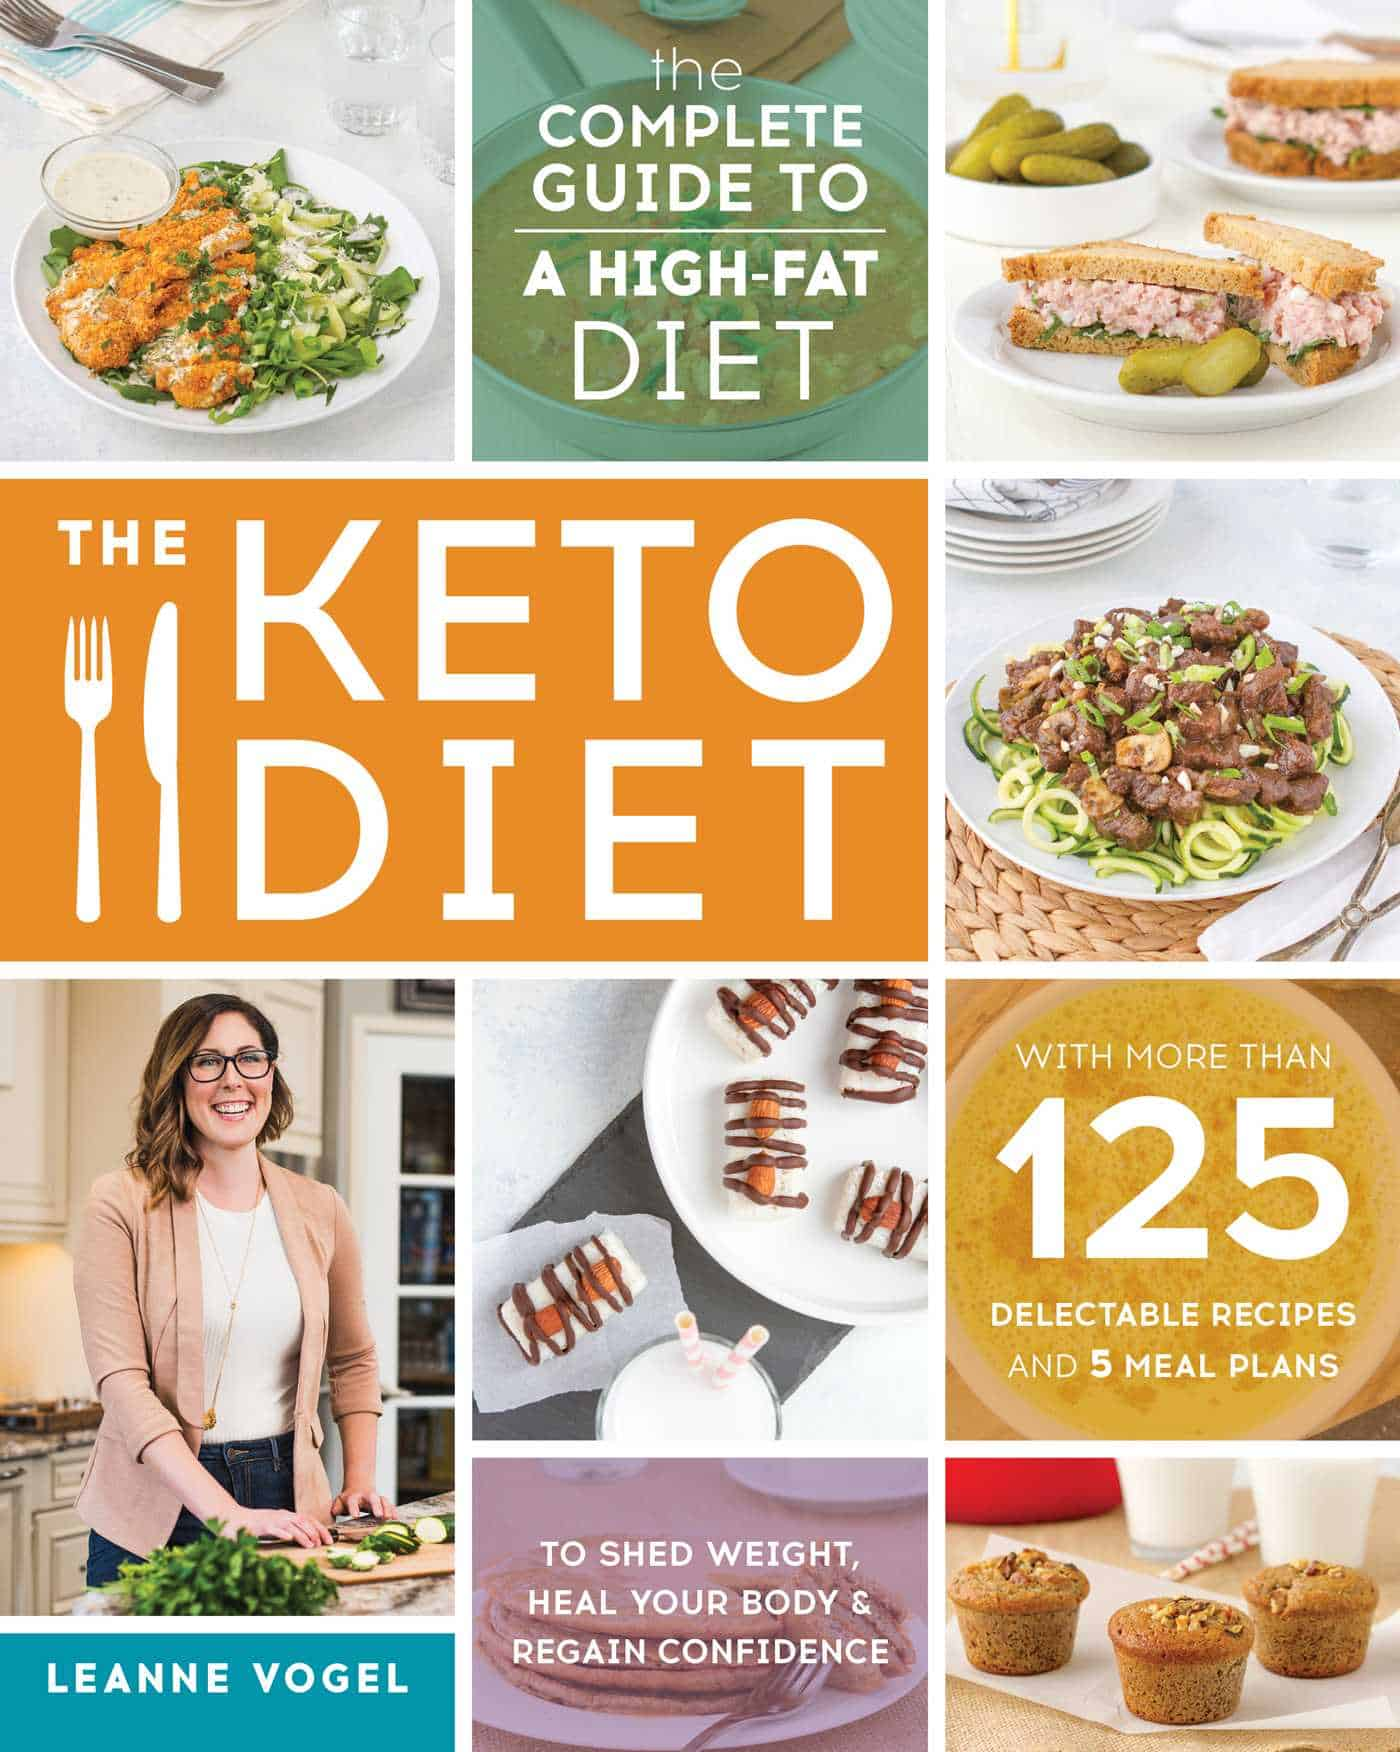 Top 6 Best Ketogenic Diet Book Reviews Of 2018 To Help You Master